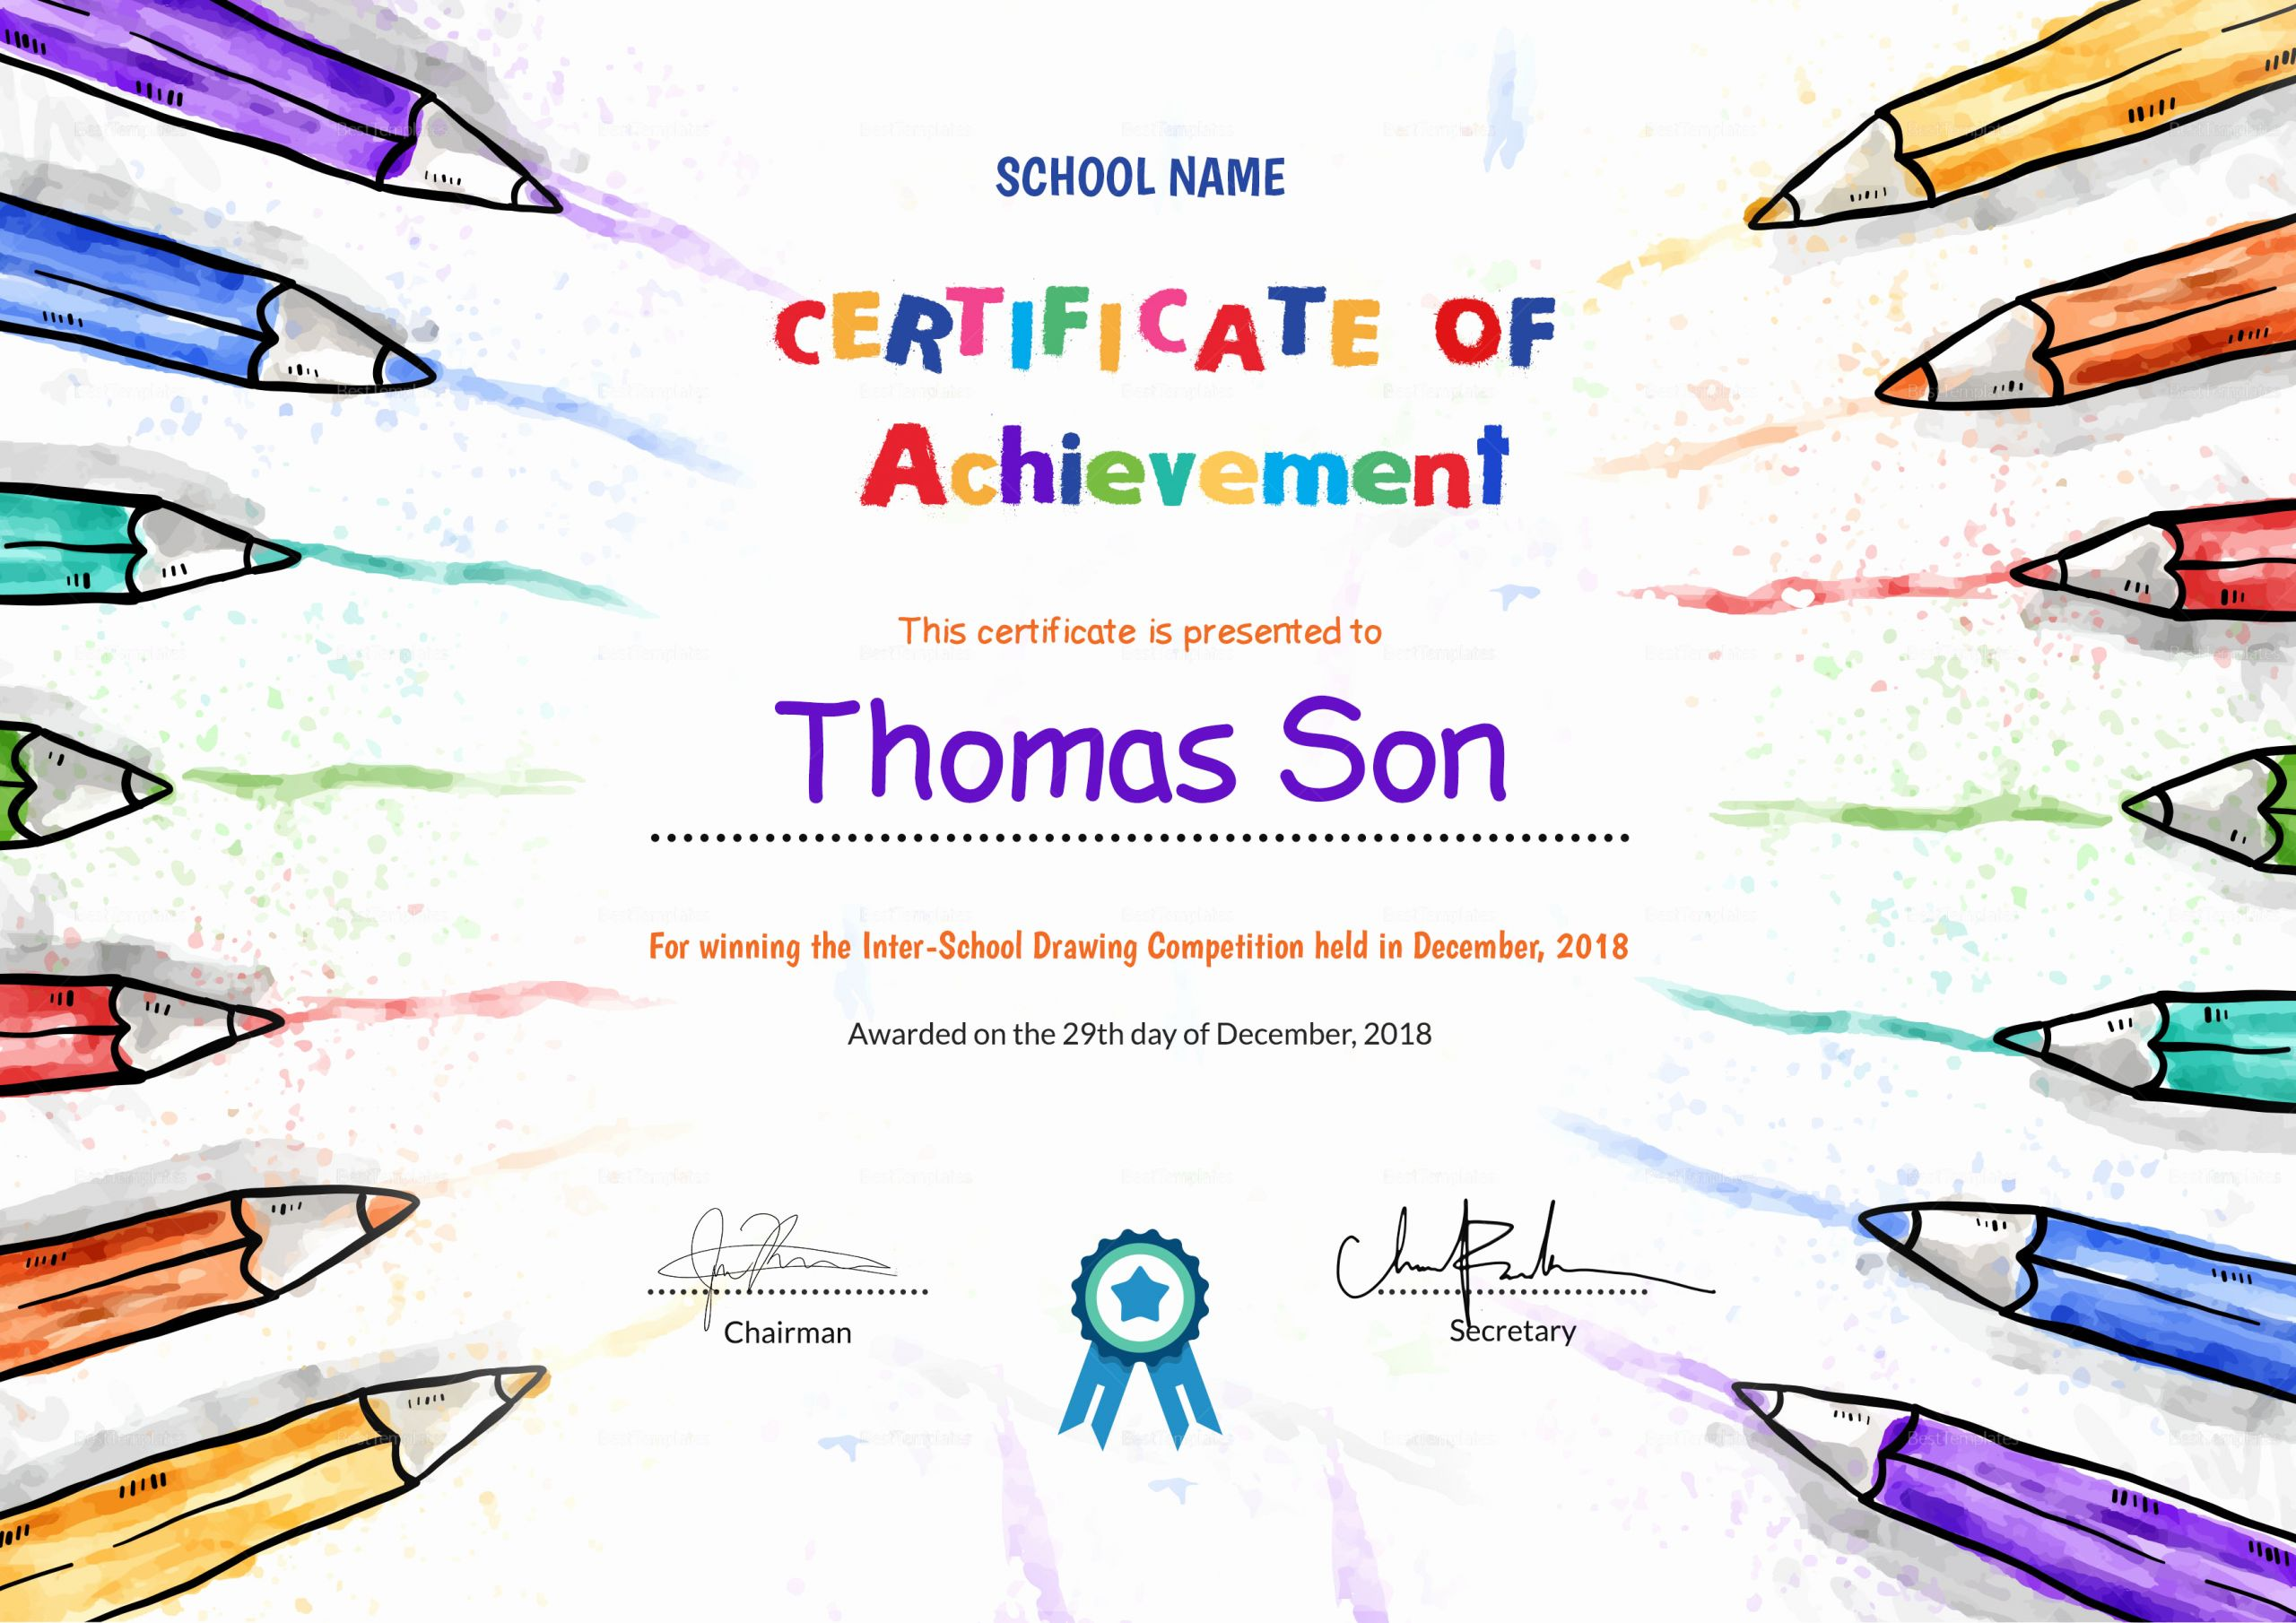 Preschool Completion Certificate Templates Lovely Preschool Achievement Certificate Design Template In Psd Word